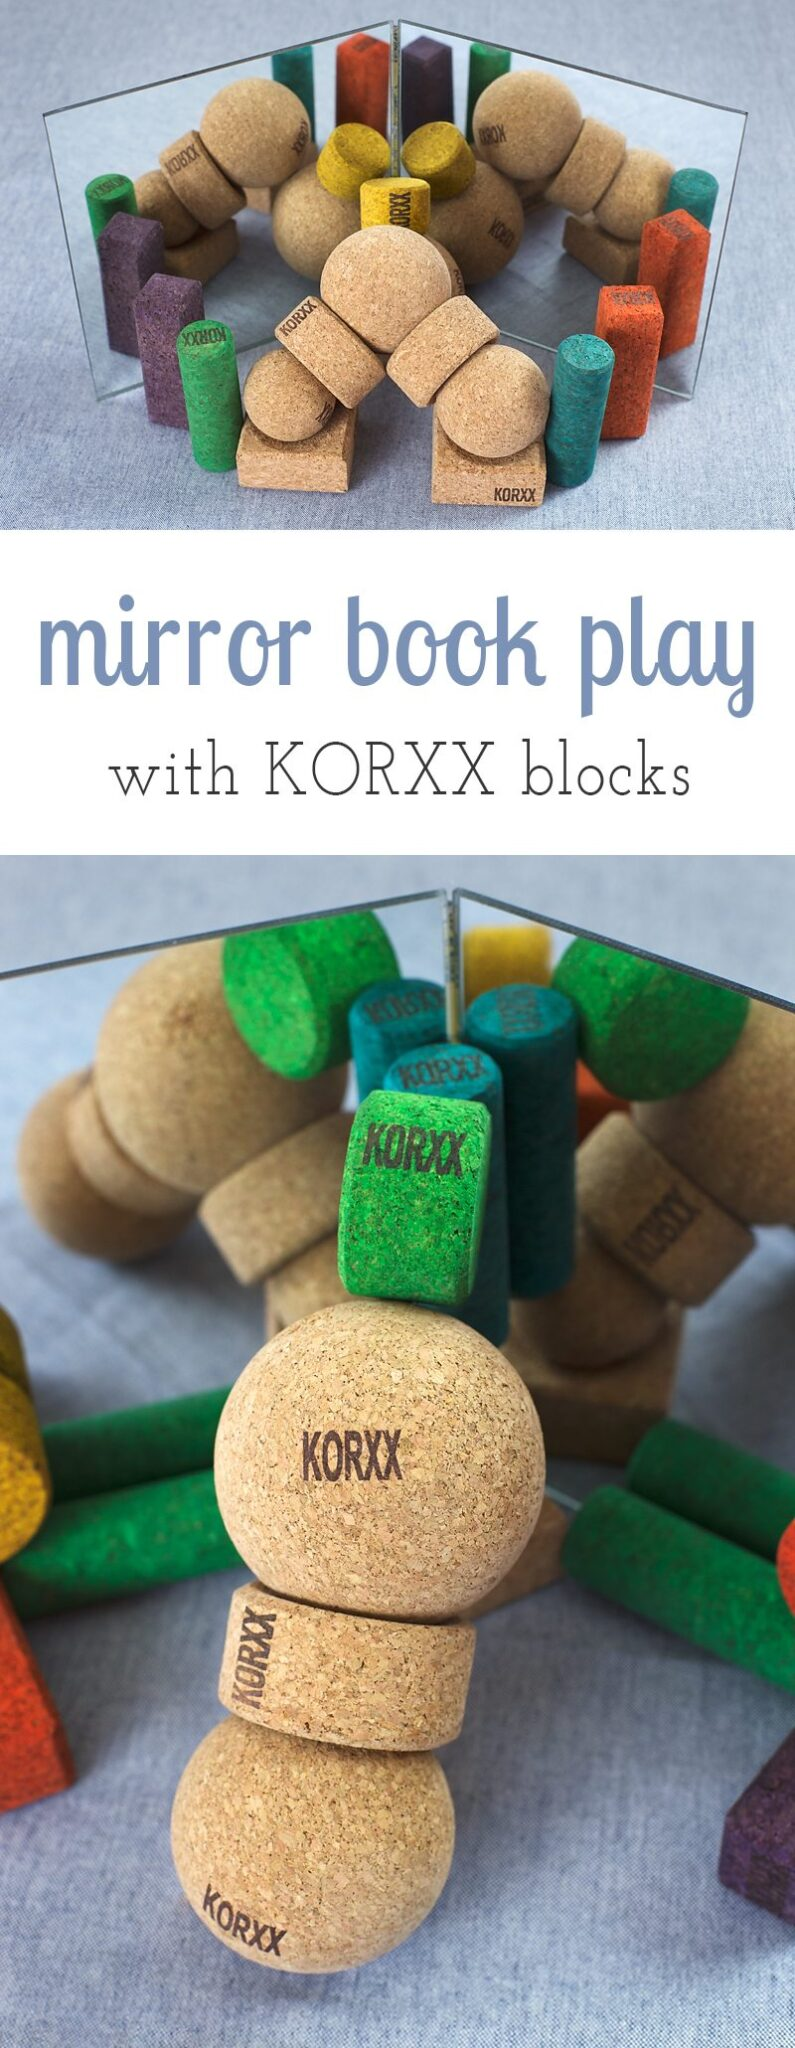 Through the use of mirror books and KORXX Blocks, kids can freely explore symmetry, design, and reflections. Sponsored by #korxx